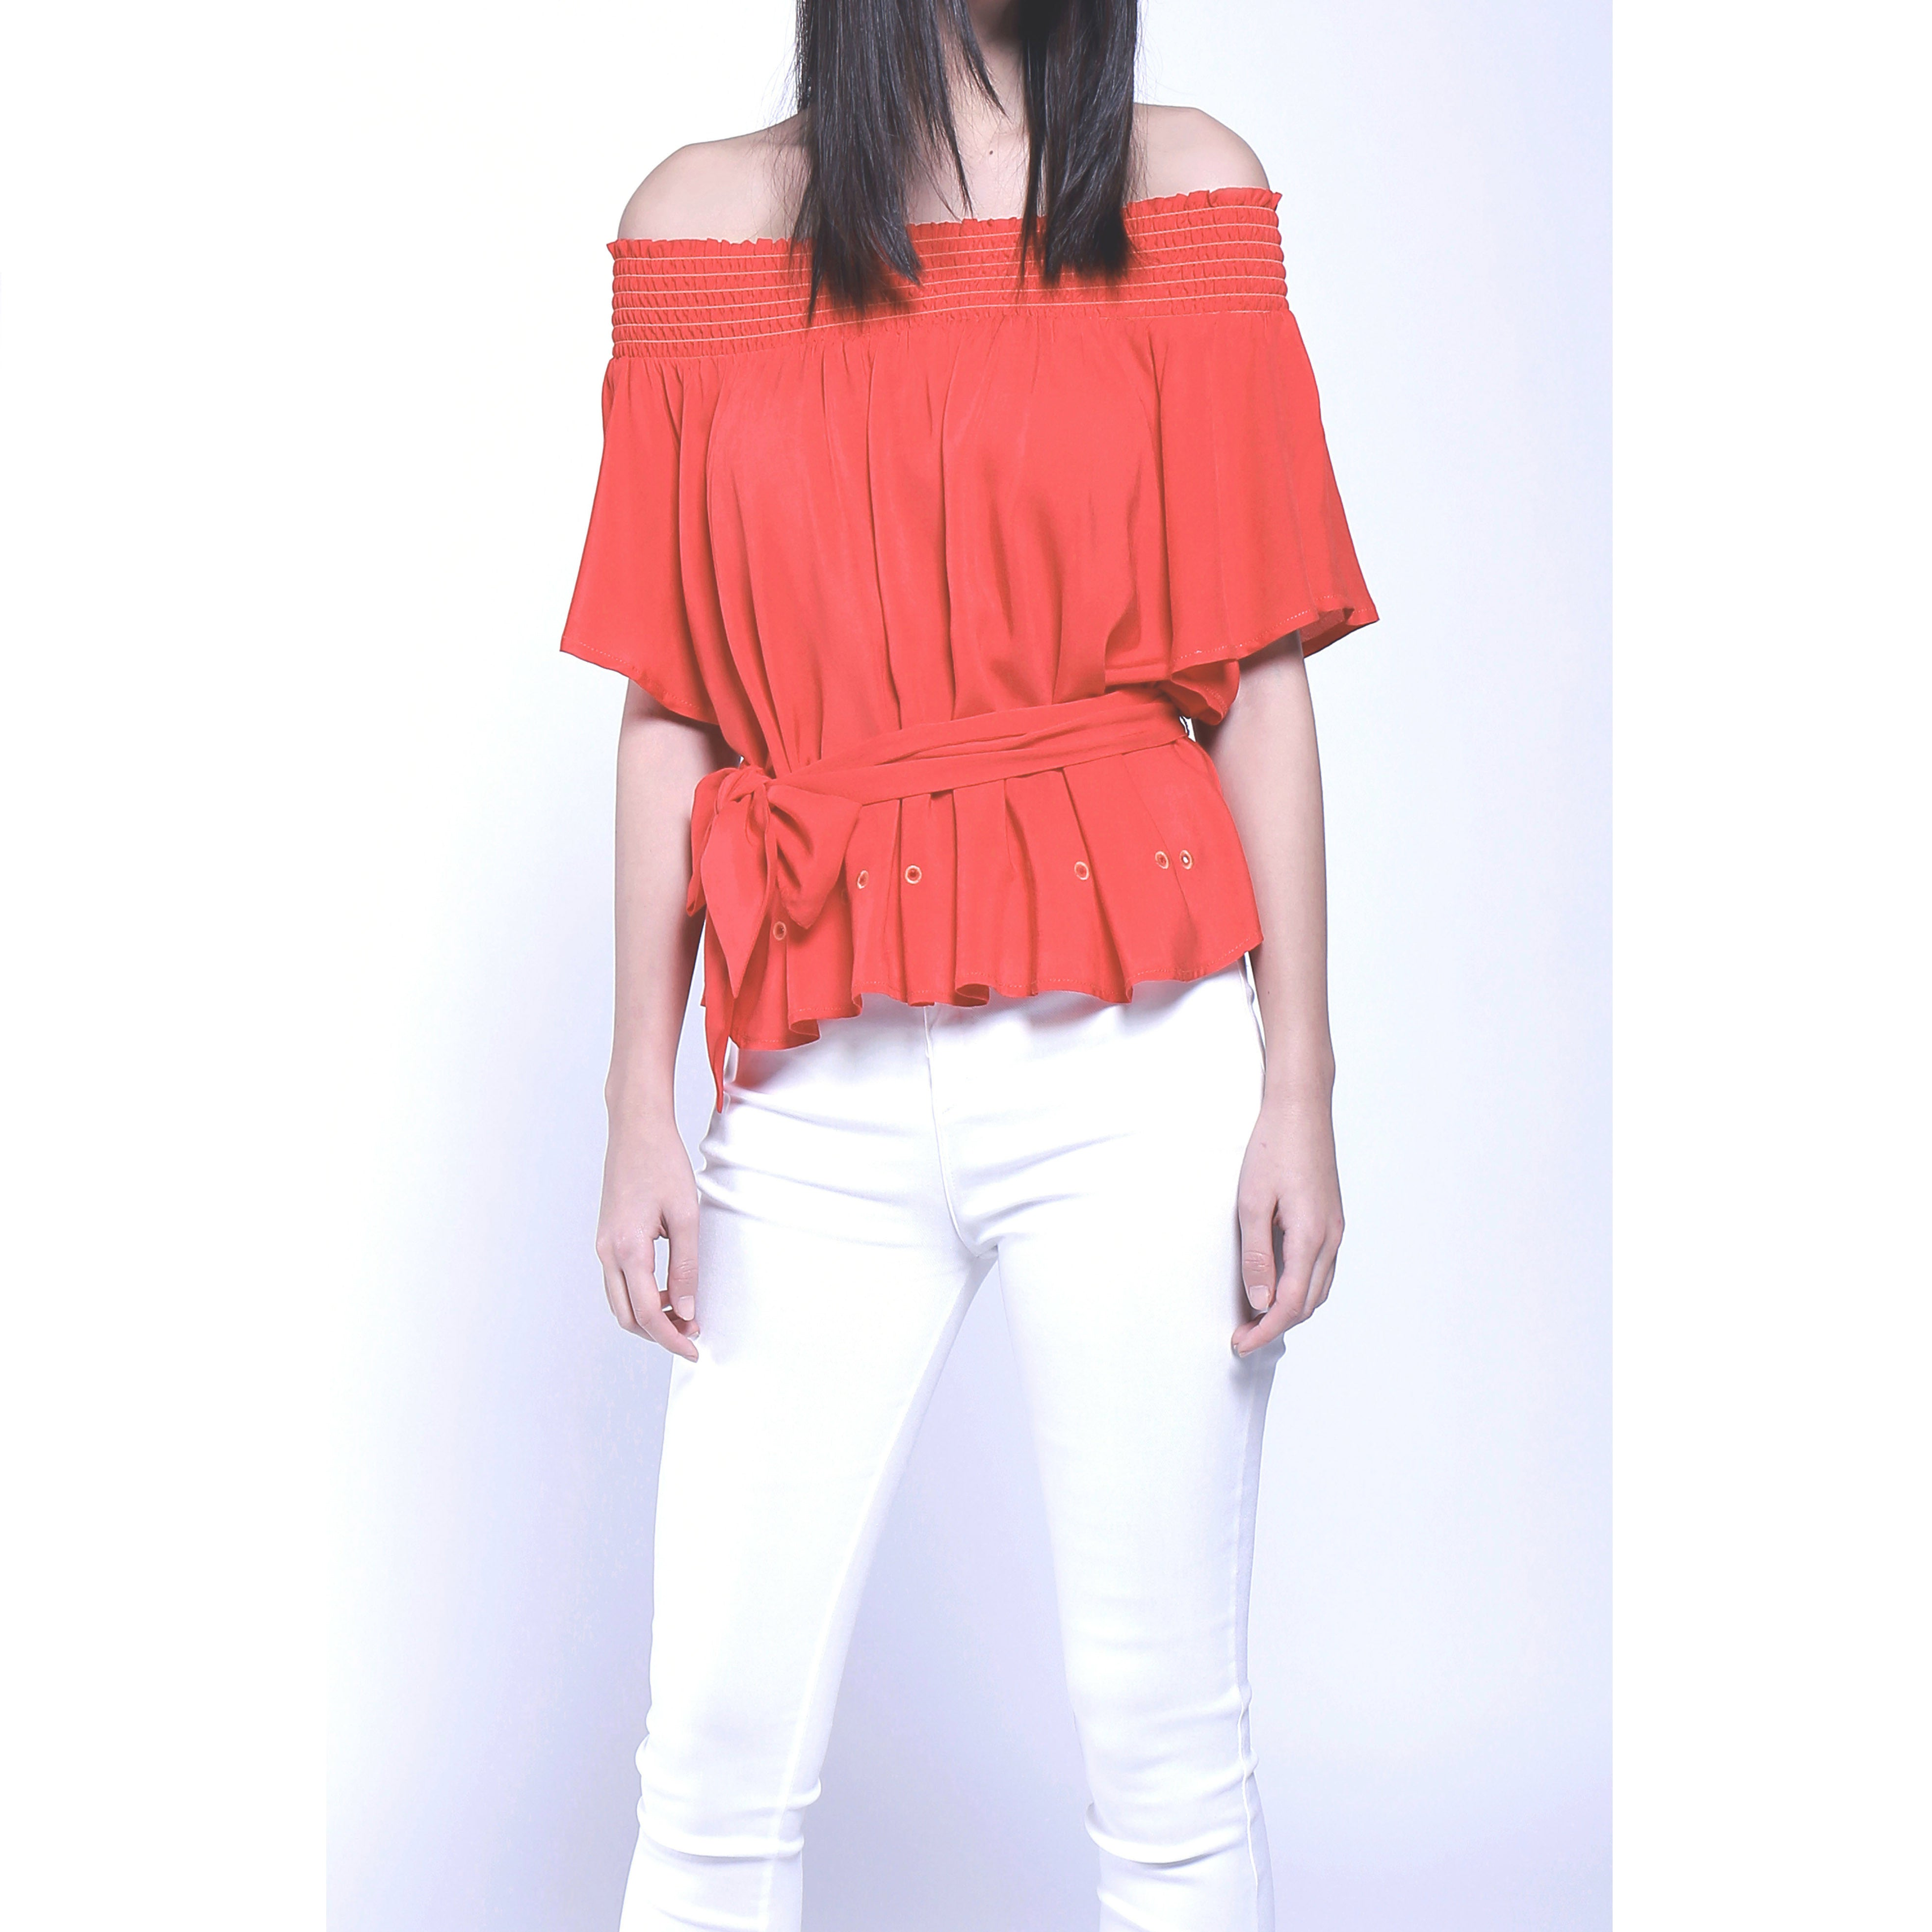 Flared sleeve off shoulder soft fabric top with tie belt & floral brooch - coral red